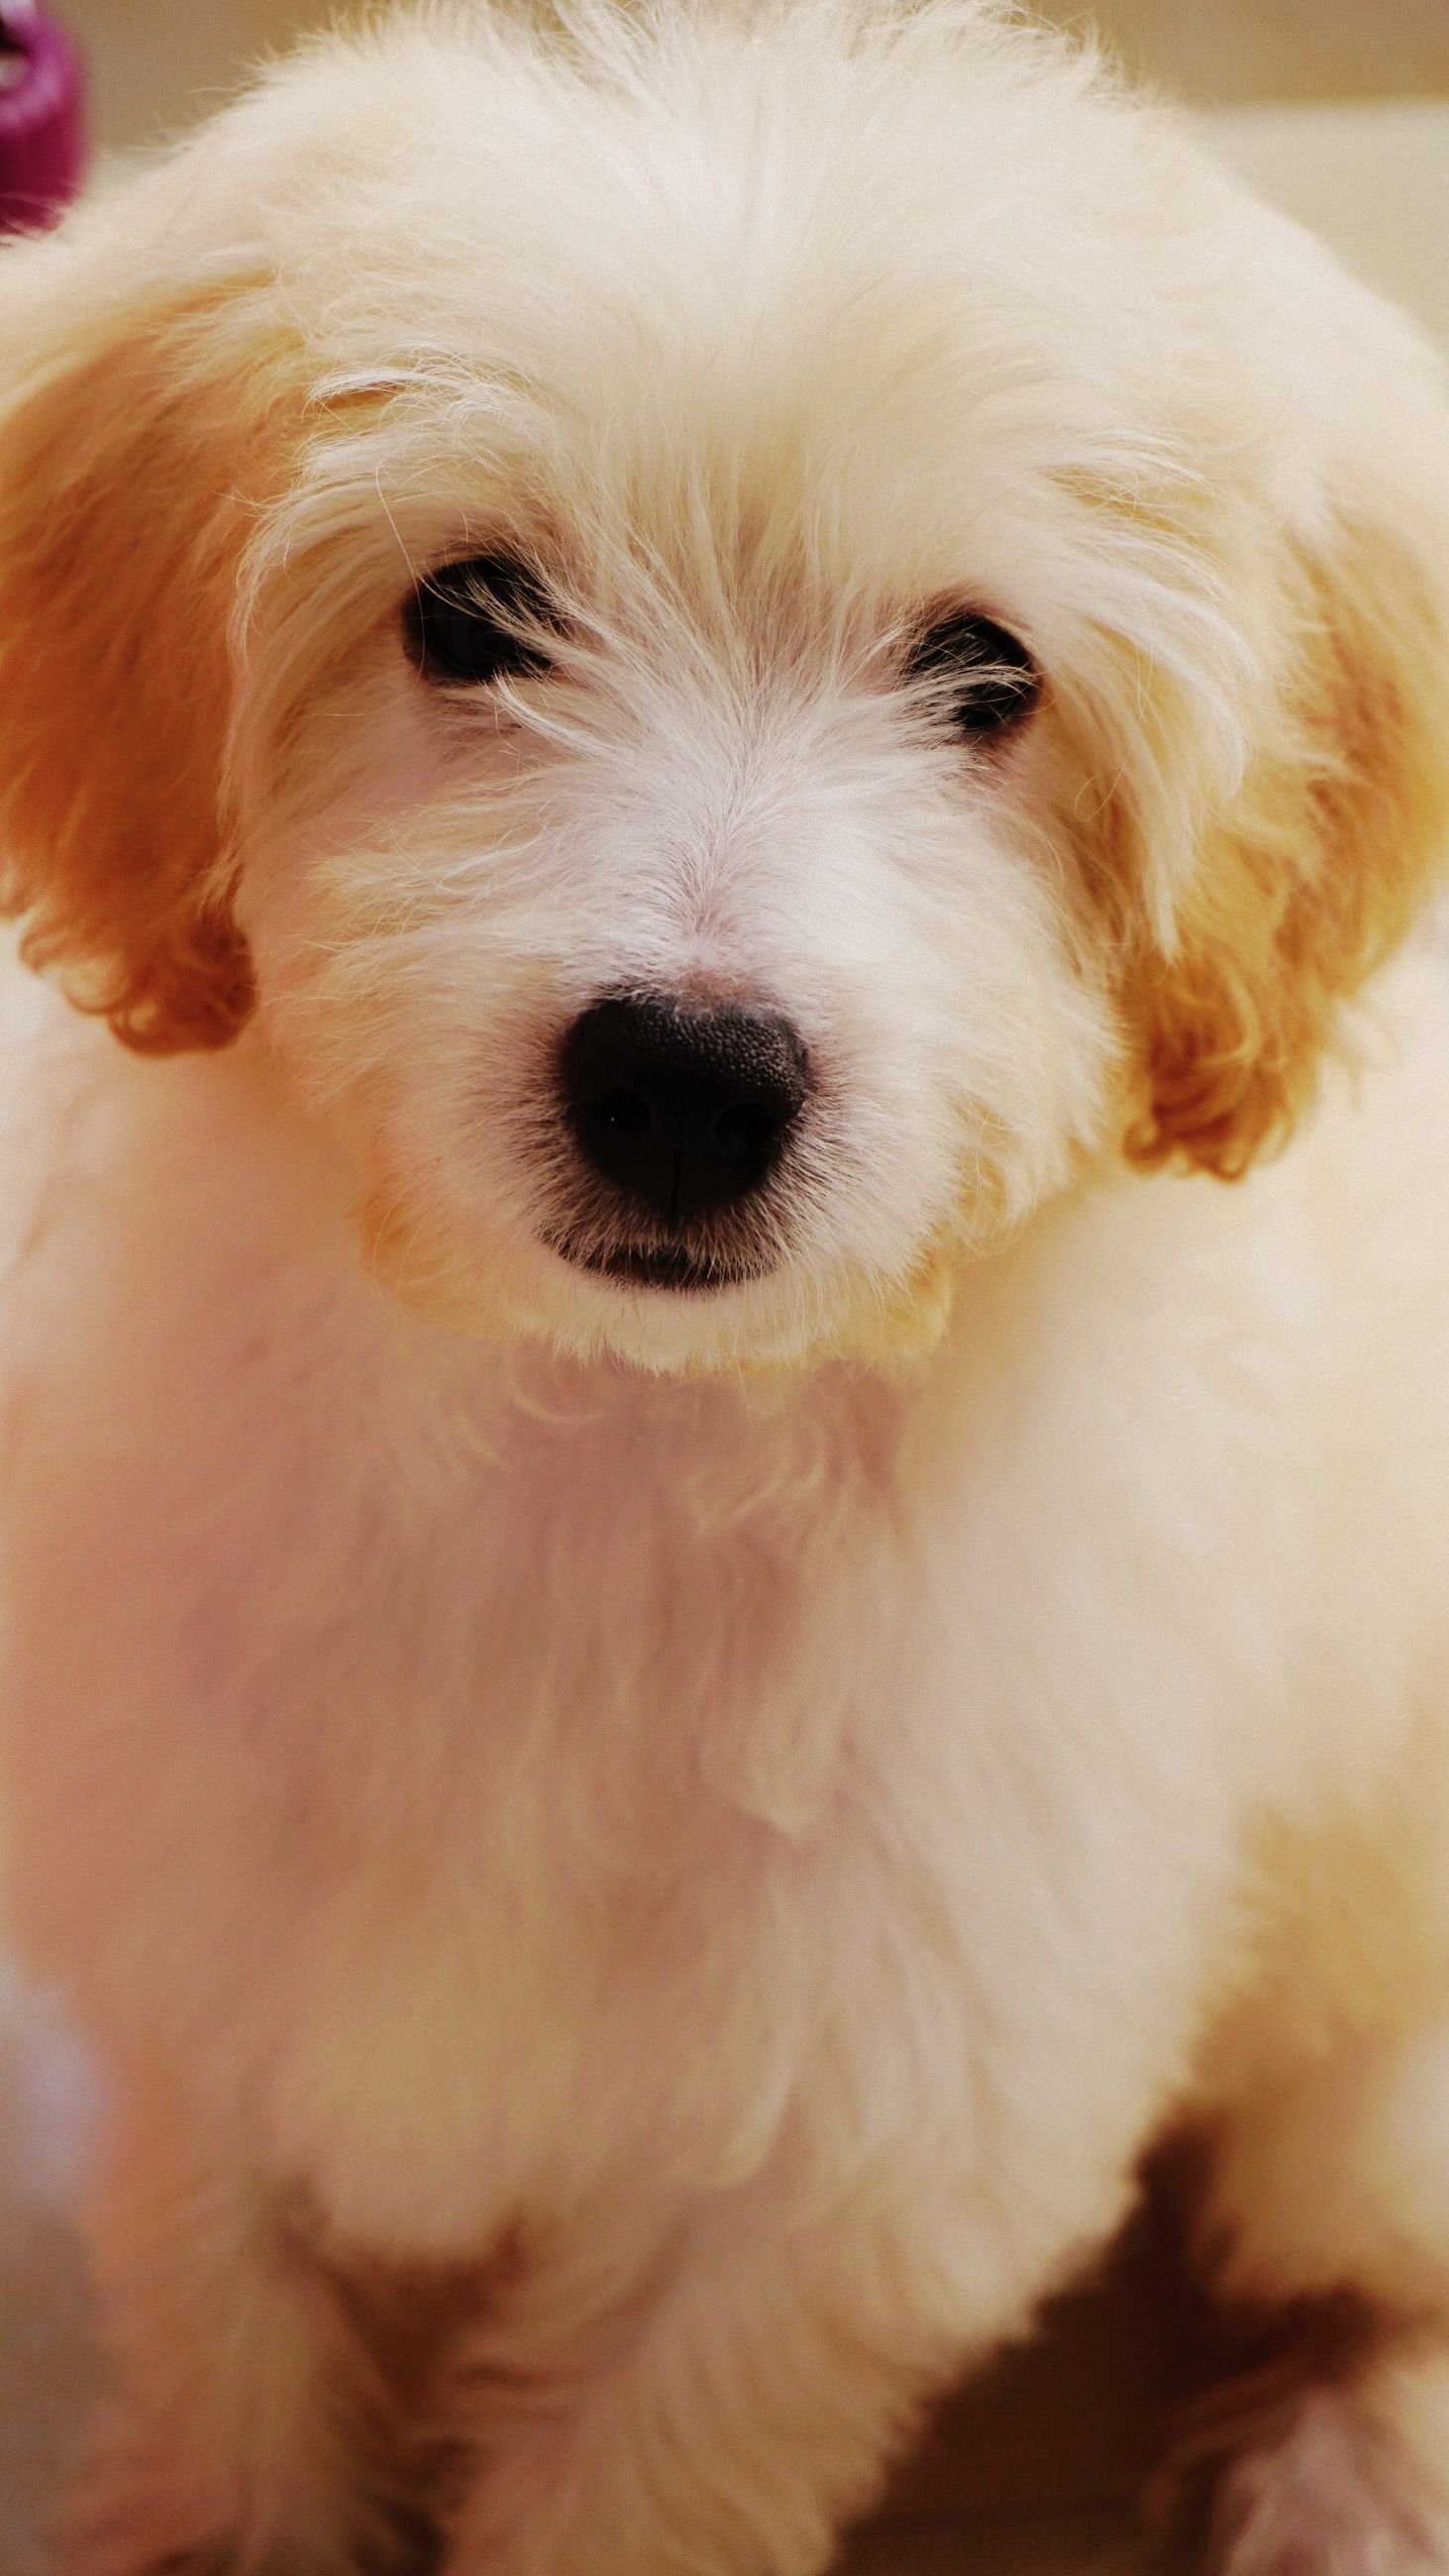 domestic, dog, one animal, canine, pets, mammal, domestic animals, looking at camera, portrait, vertebrate, white color, indoors, animal hair, hair, close-up, no people, animal body part, small, snout